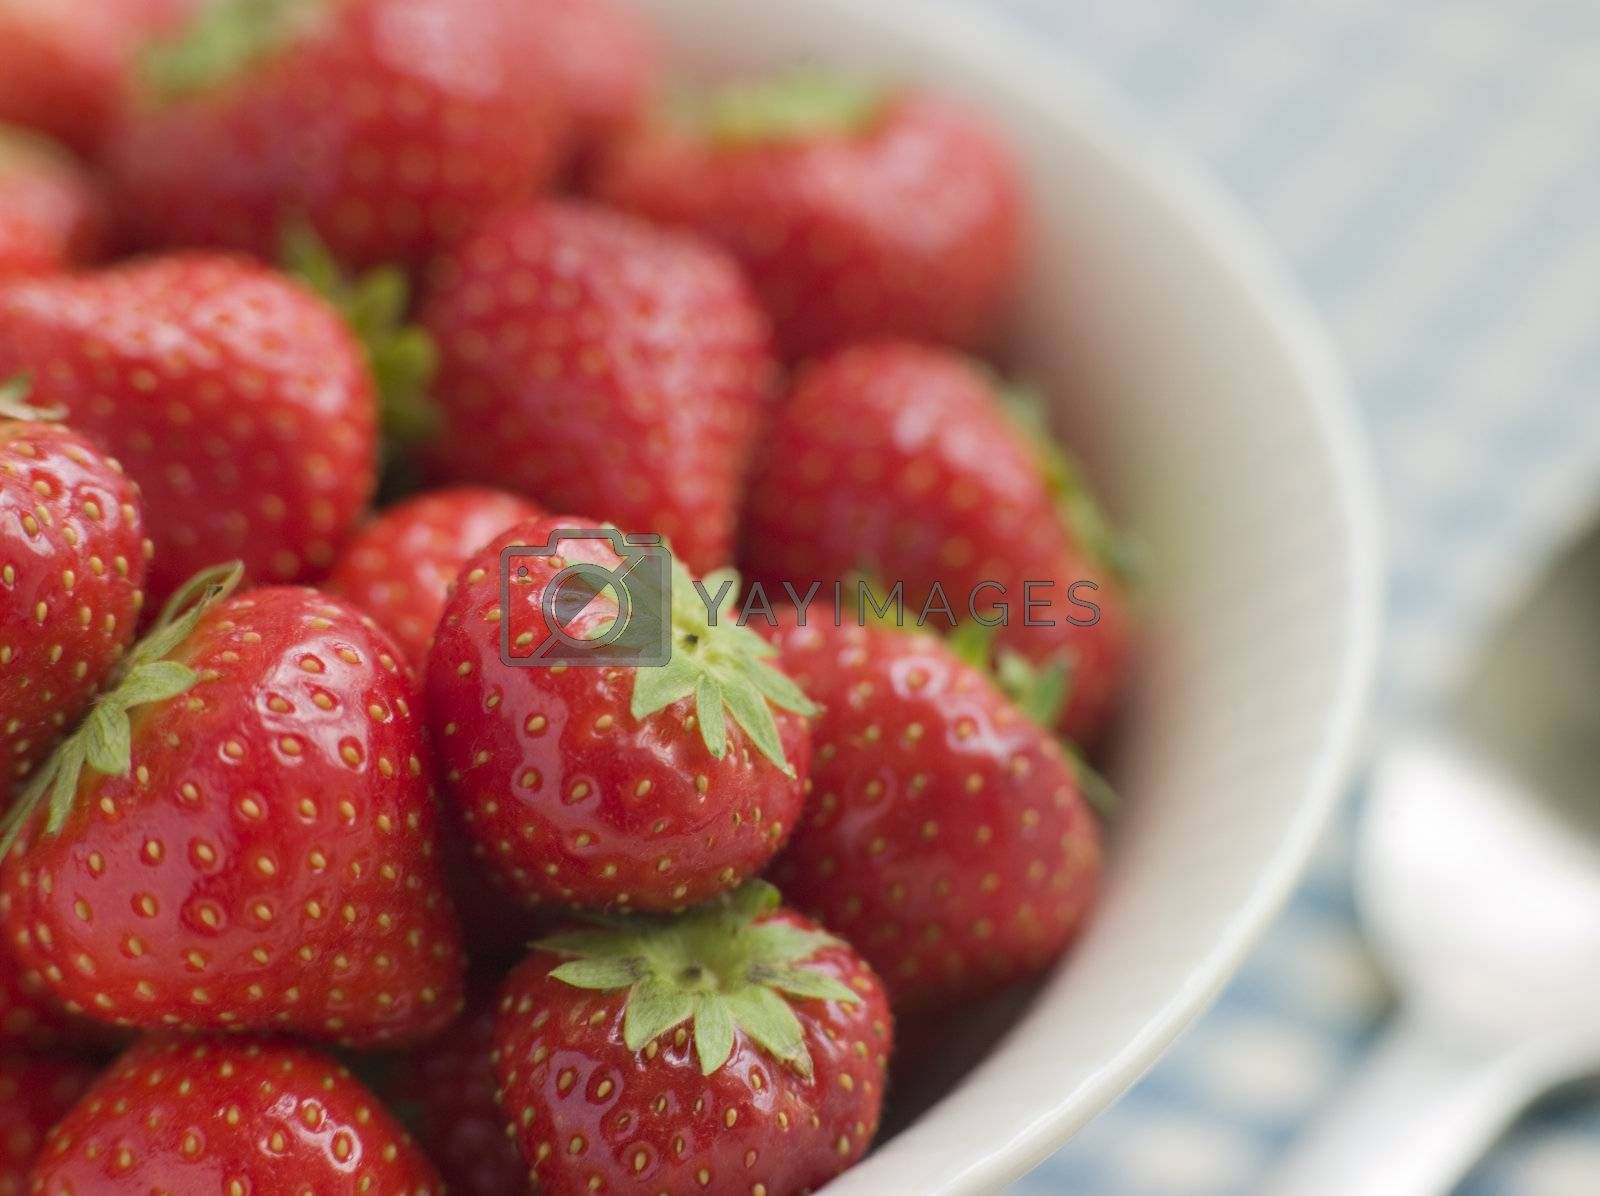 Bowl of English Strawberries by MonkeyBusiness